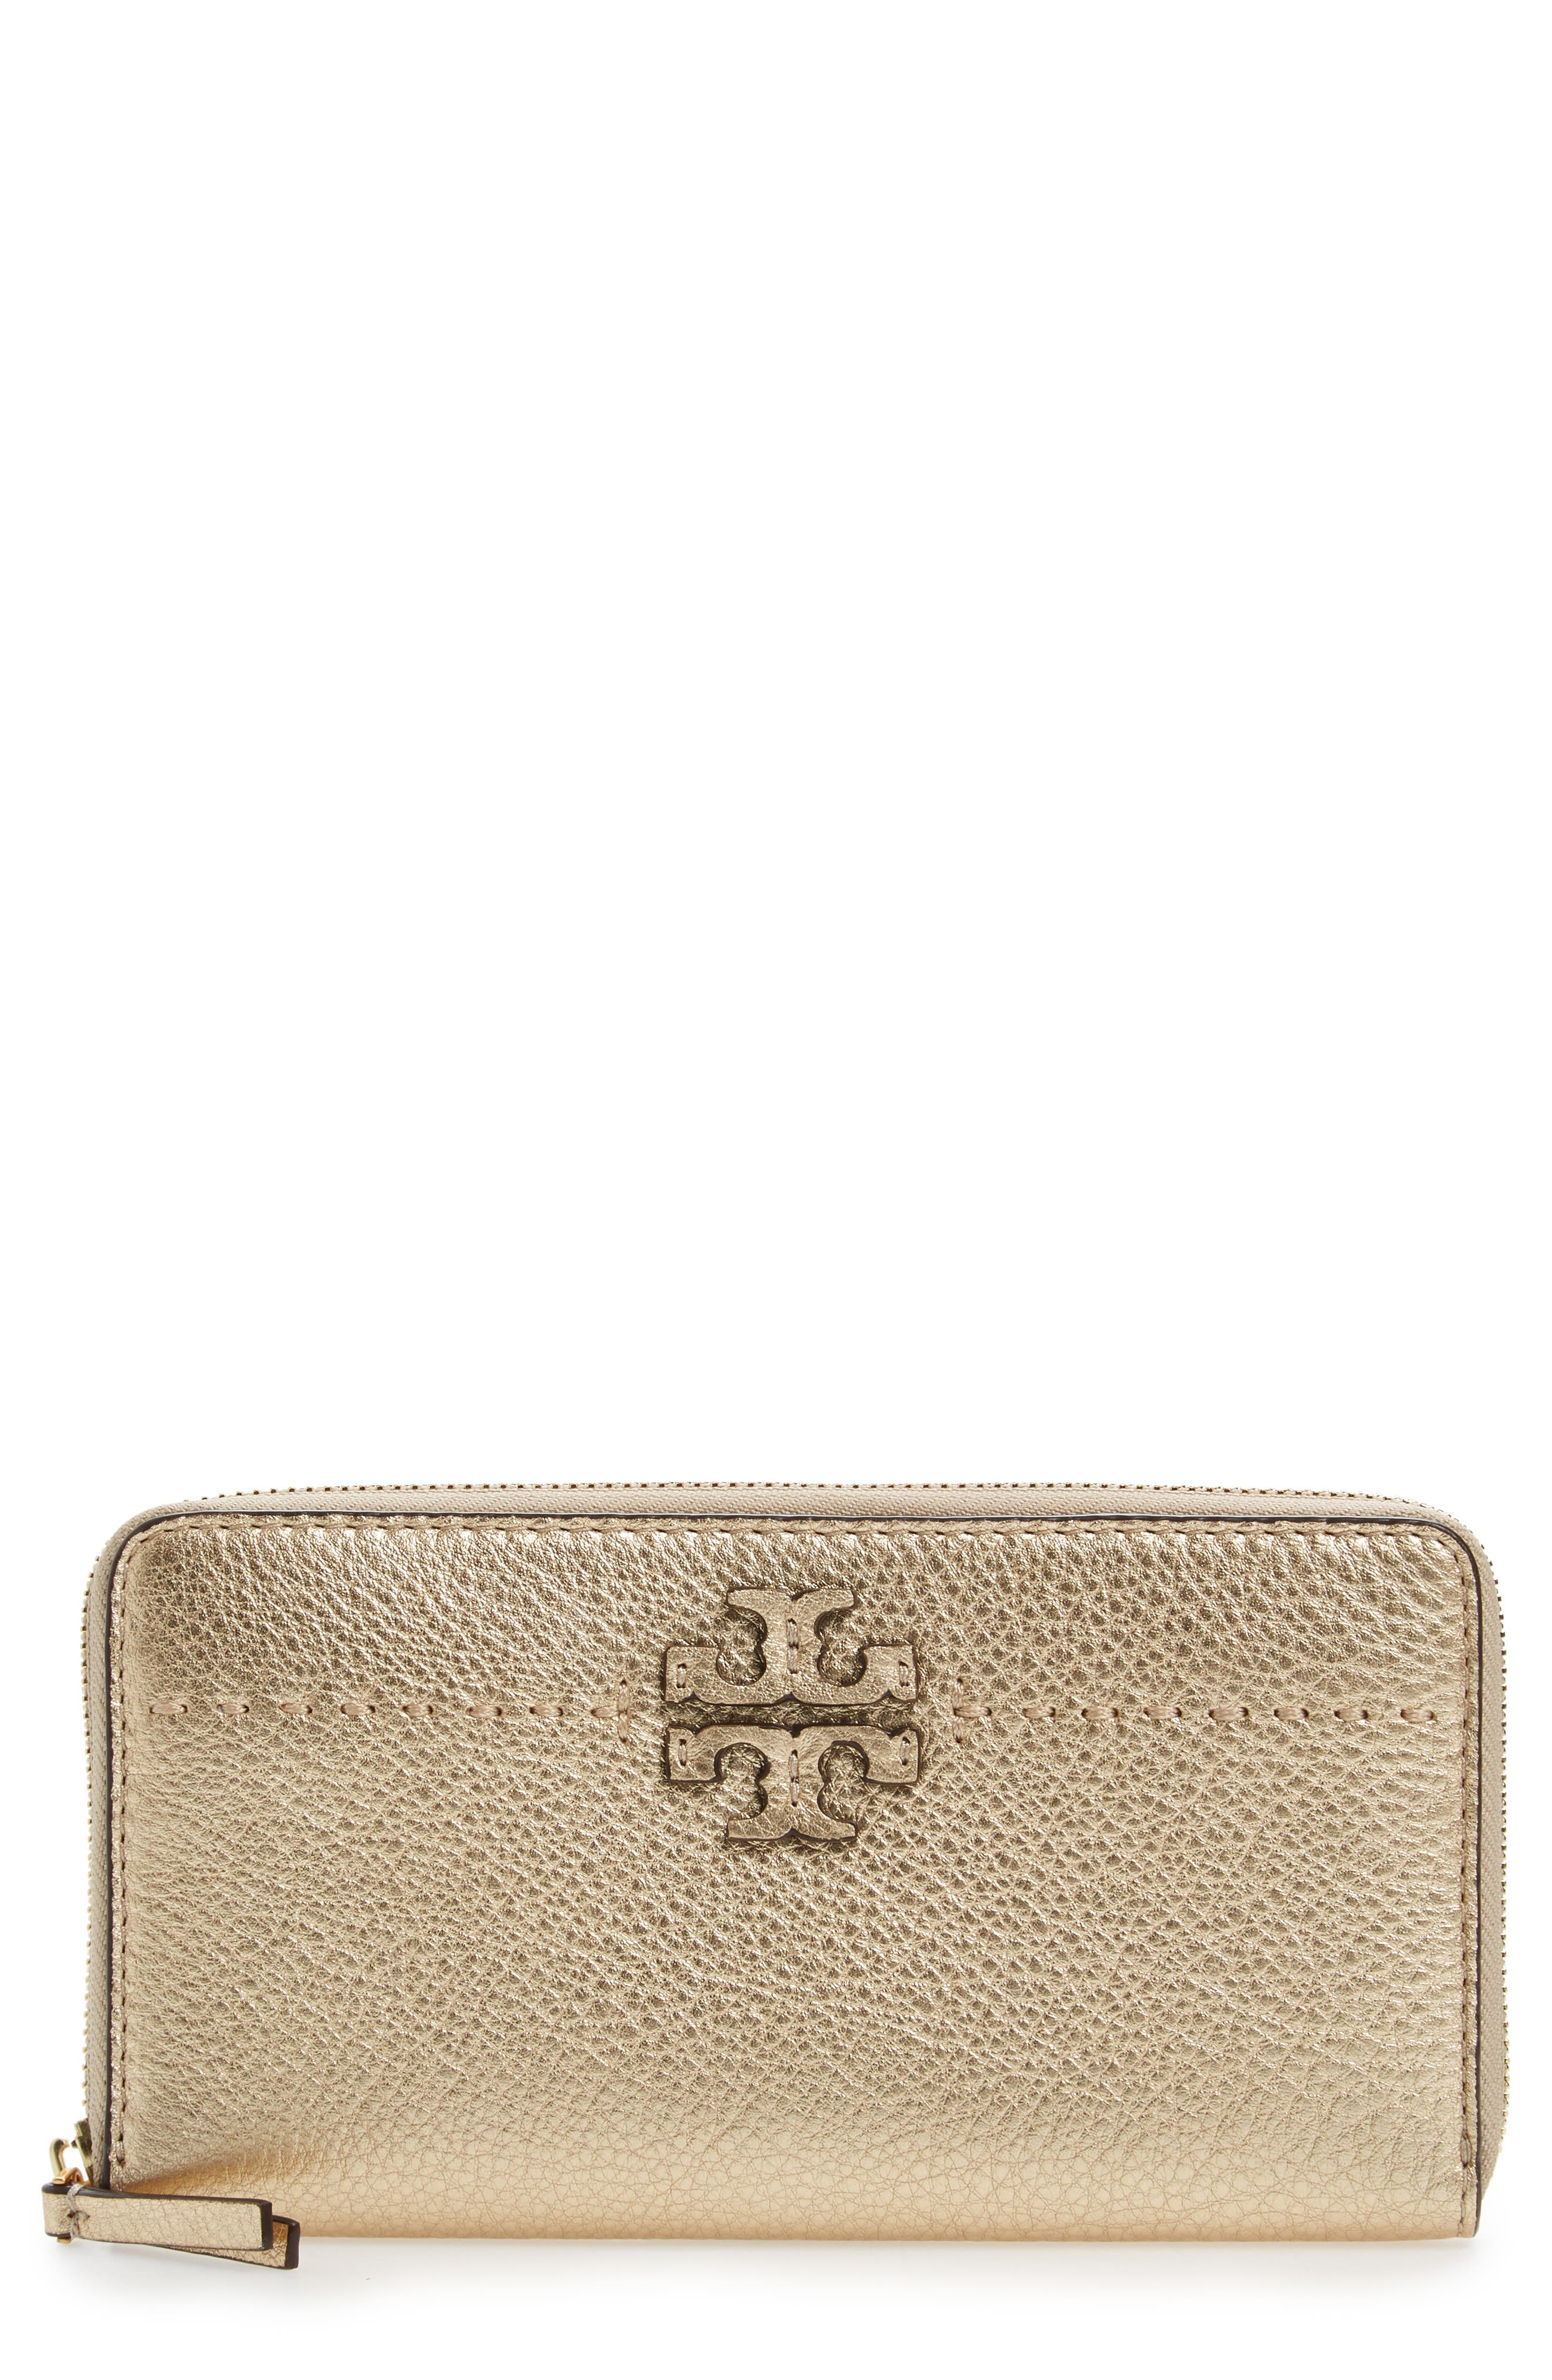 McGraw Leather Continental Wallet,                         Main,                         color, 710